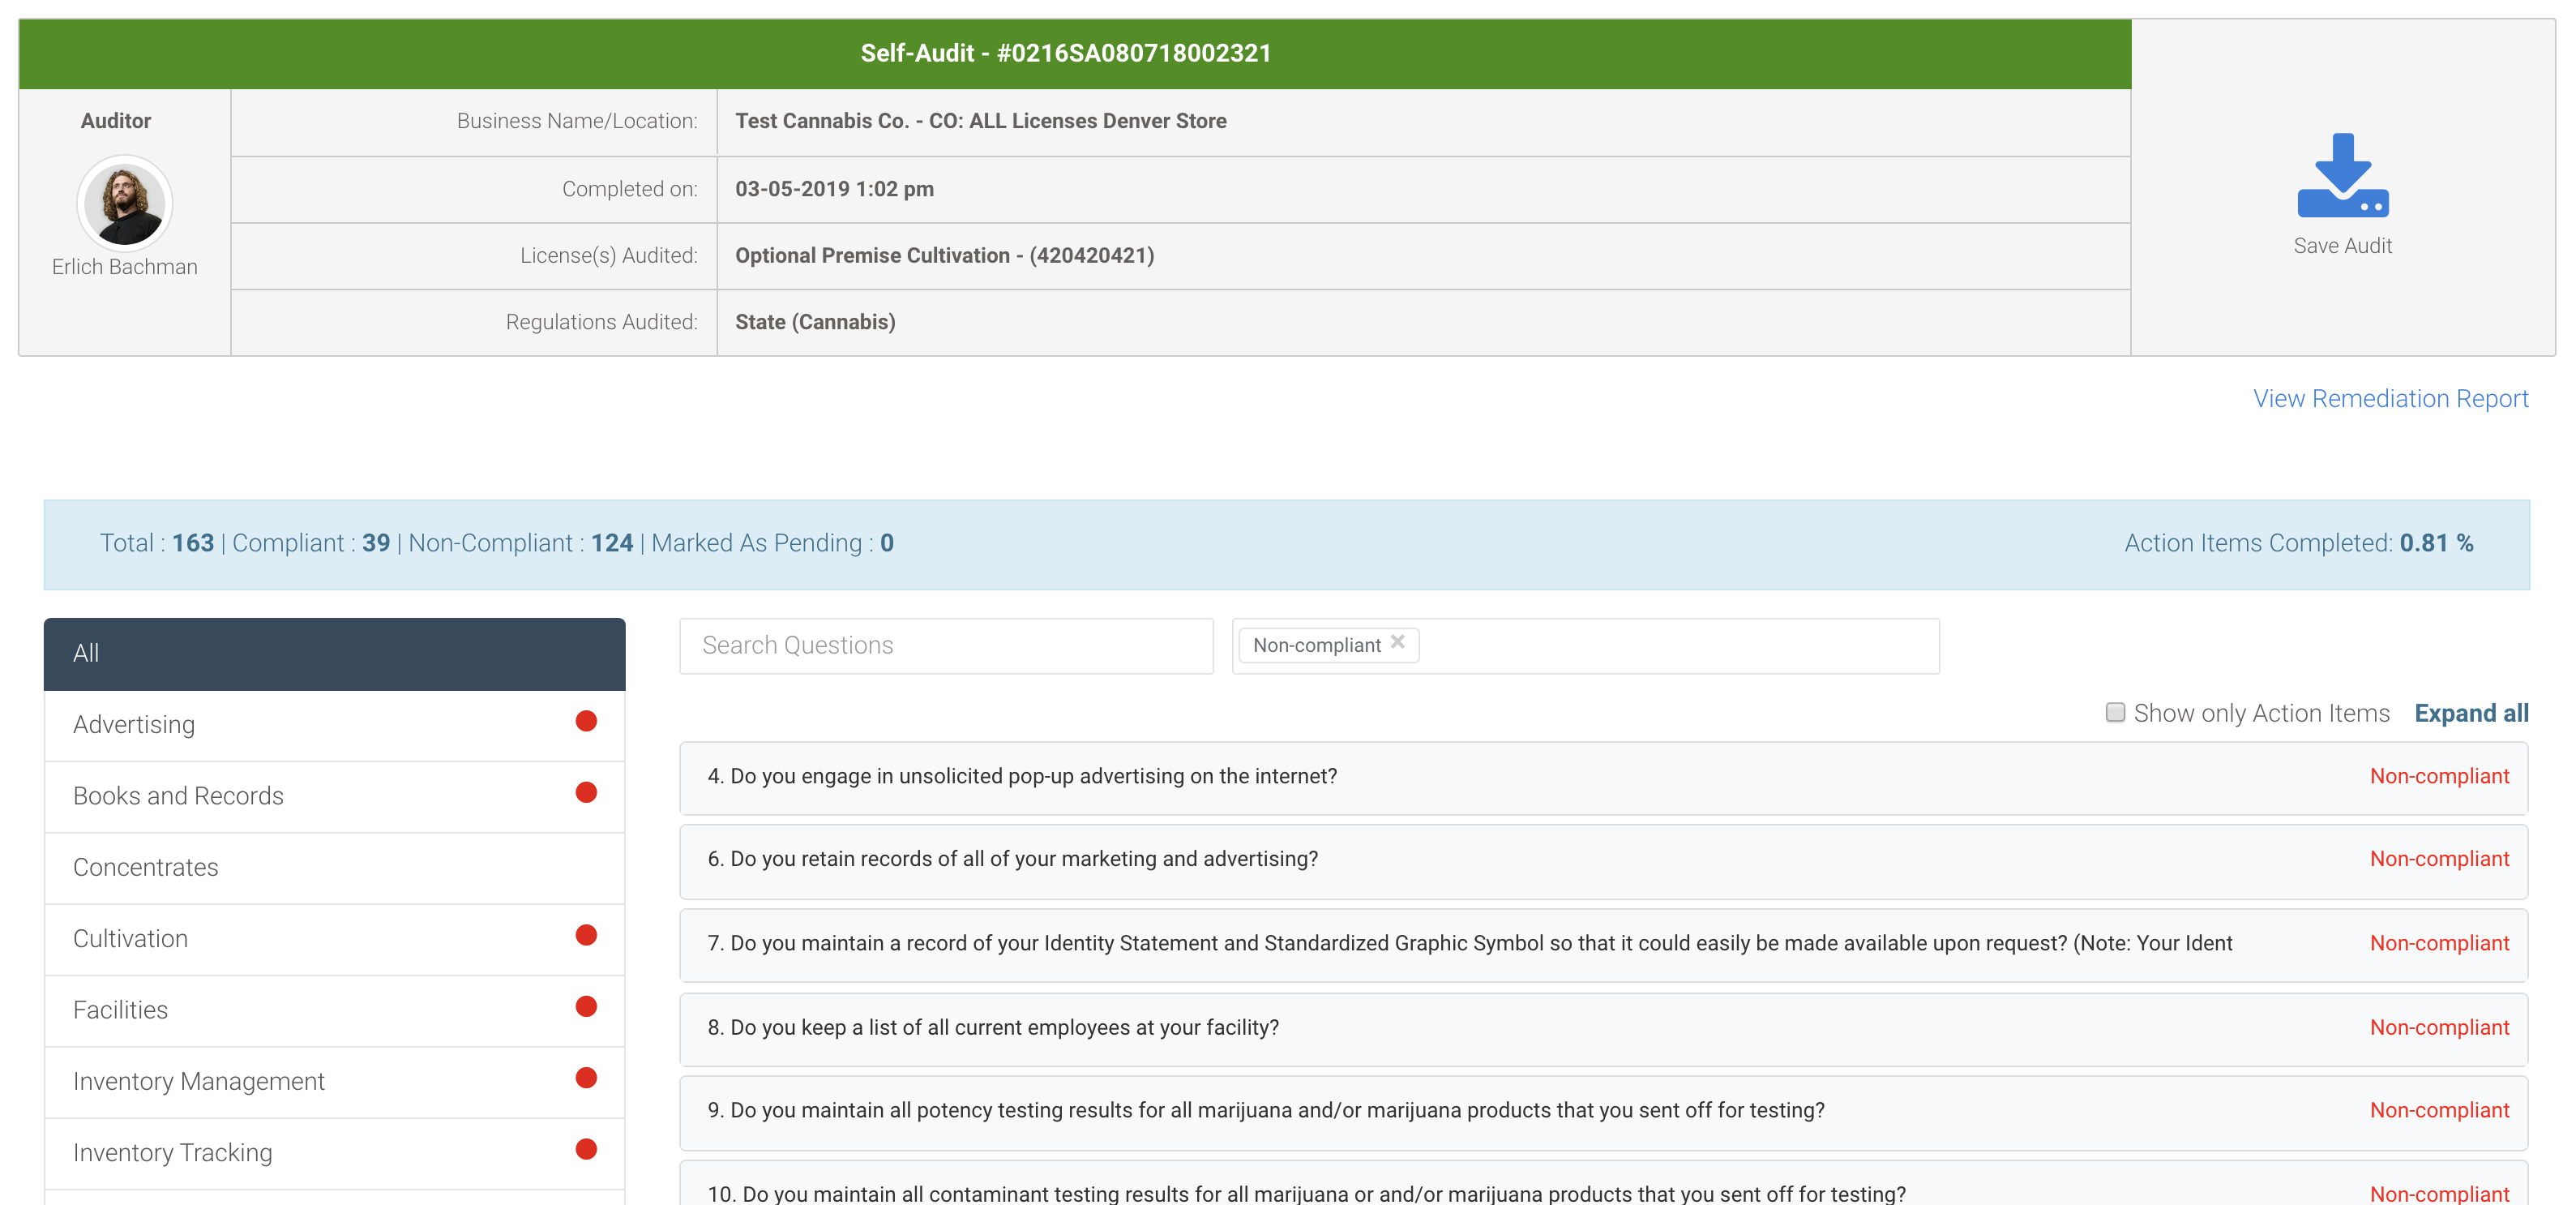 zendesk_audit_report_assign_action_items.png